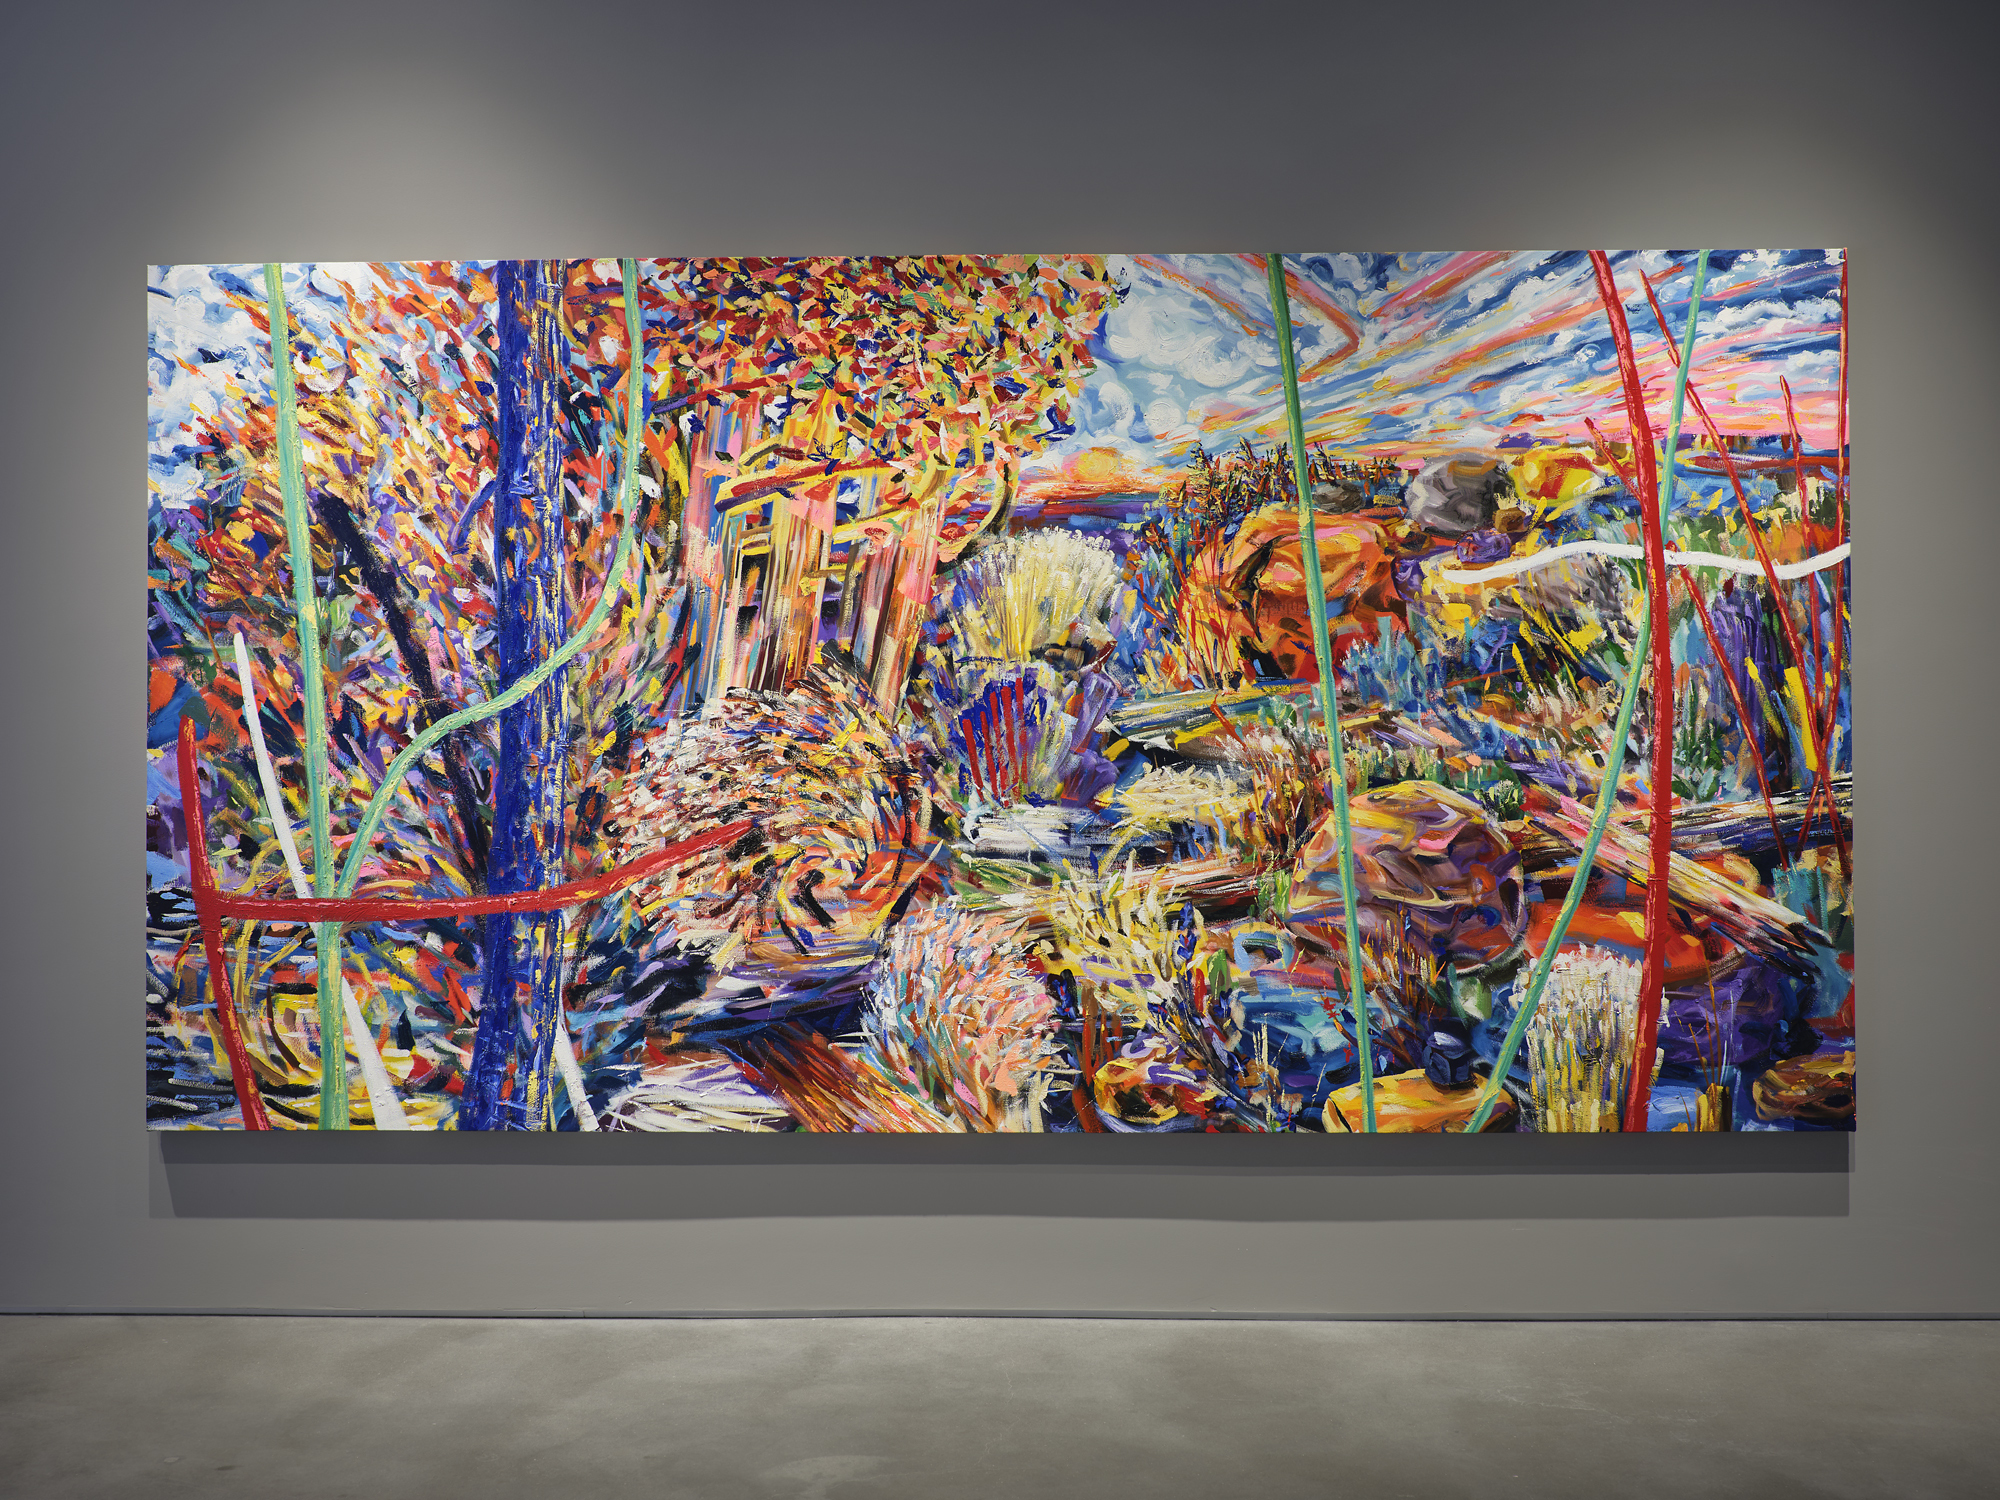 A photograph of a vibrant abstract landscape hanging in an art gallery